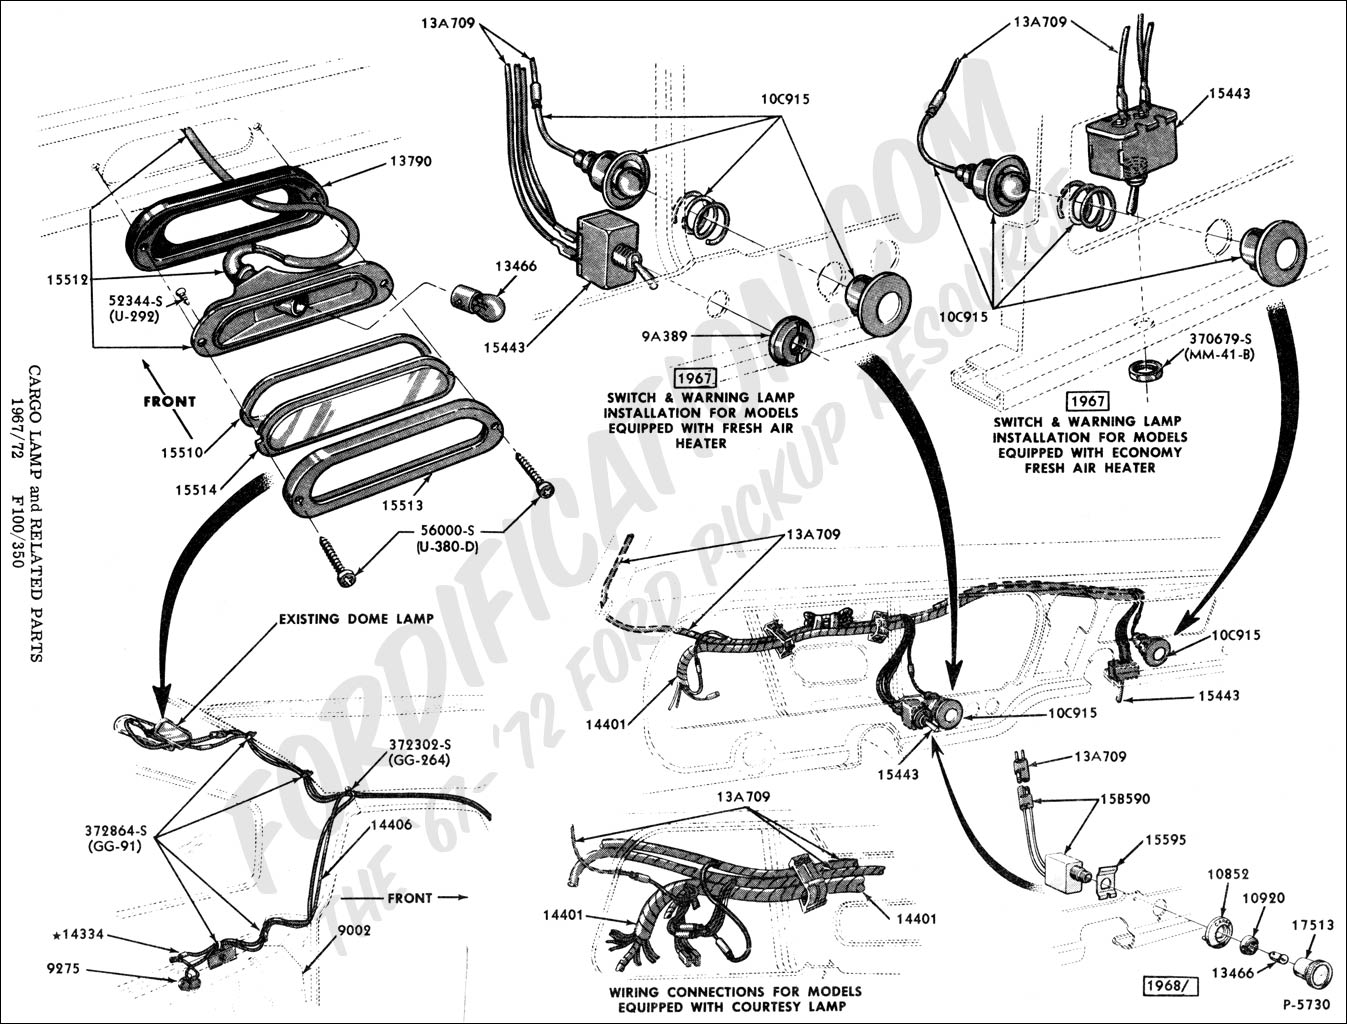 1950 Studebaker Ch ion Wiring Diagram moreover 1955 Studebaker Wiring Diagram besides 1953 Ford F100 Engine Wiring Diagram furthermore 1950 Studebaker Ch ion Overdrive Wiring Diagram as well 1956 Ford Main Line Wiring Diagram. on 1955 studebaker wiring diagram